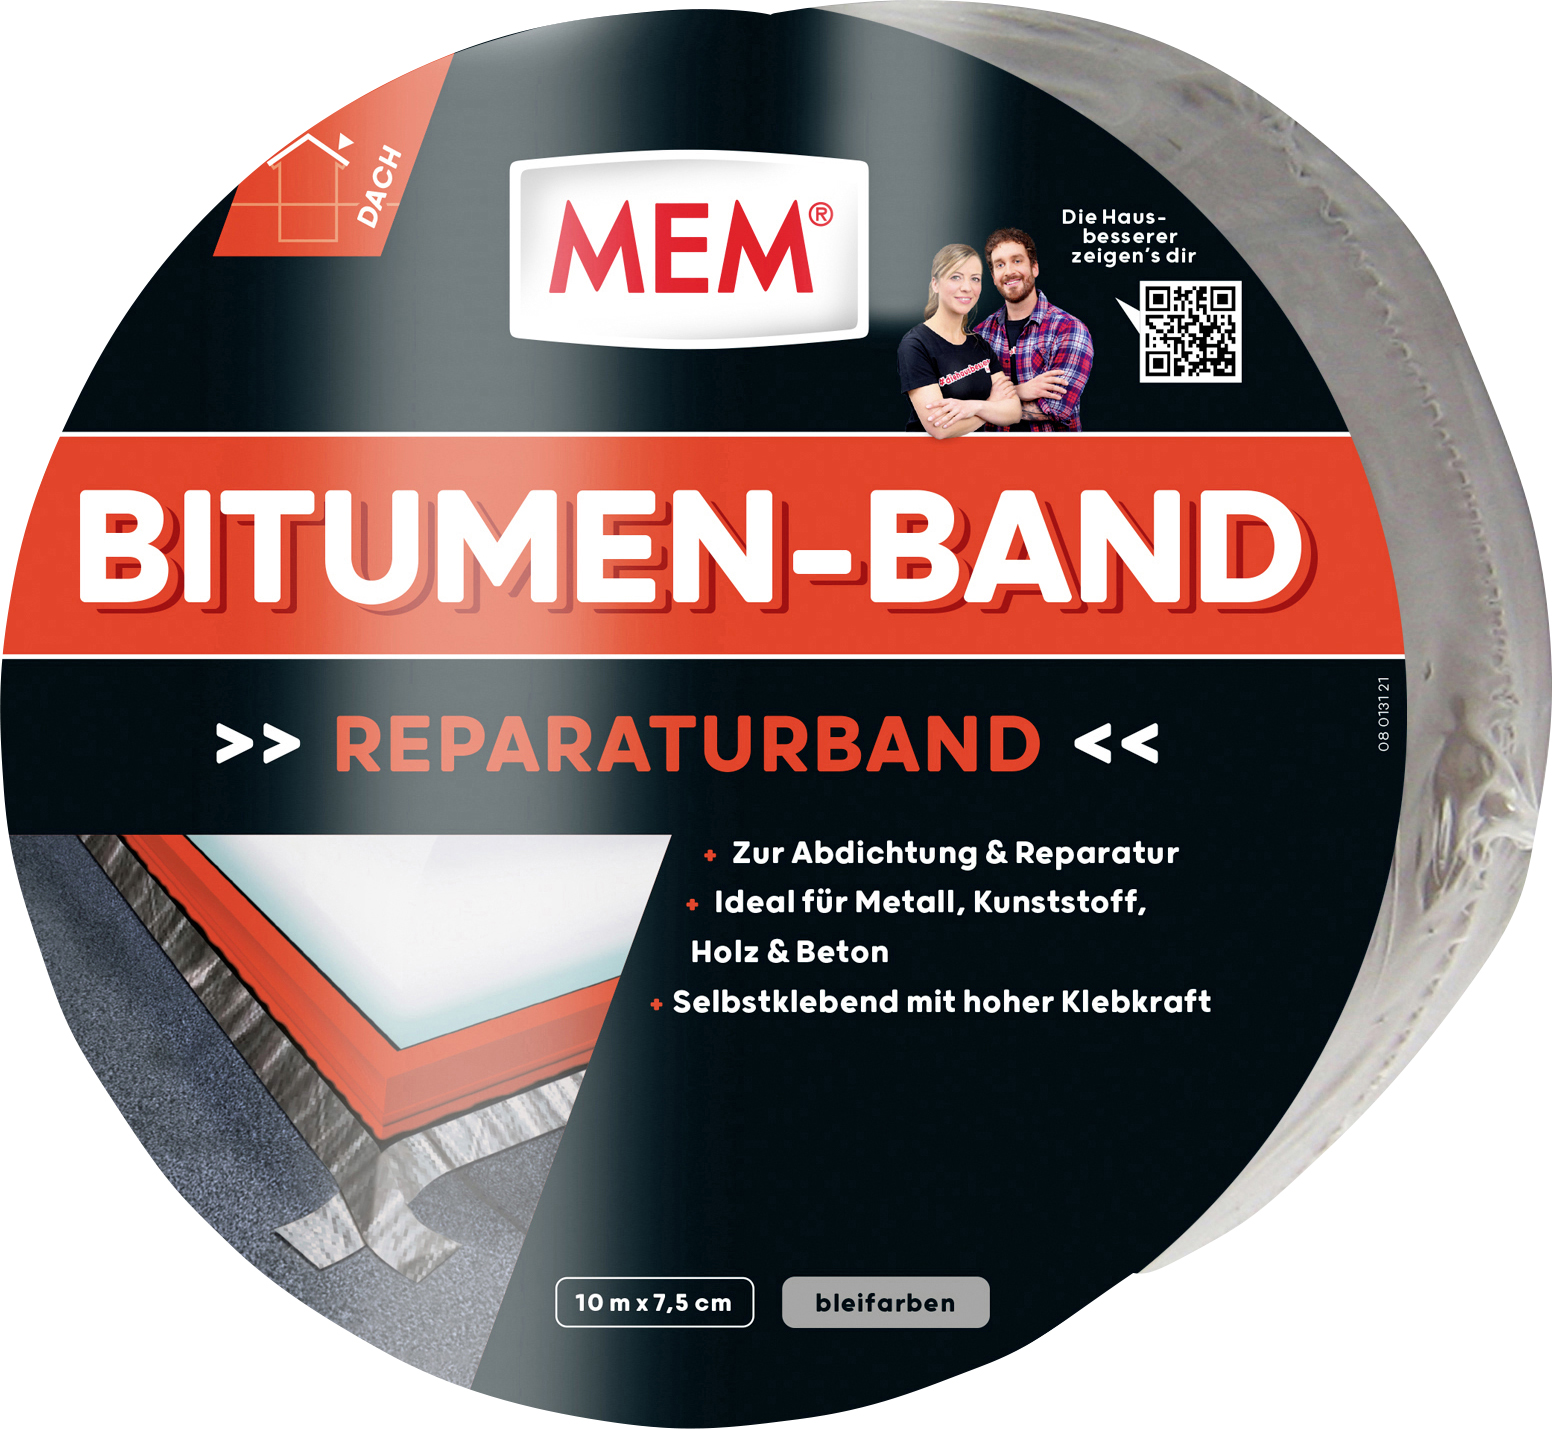 mem bitumen band dachpappe bitumen globus baumarkt online shop. Black Bedroom Furniture Sets. Home Design Ideas